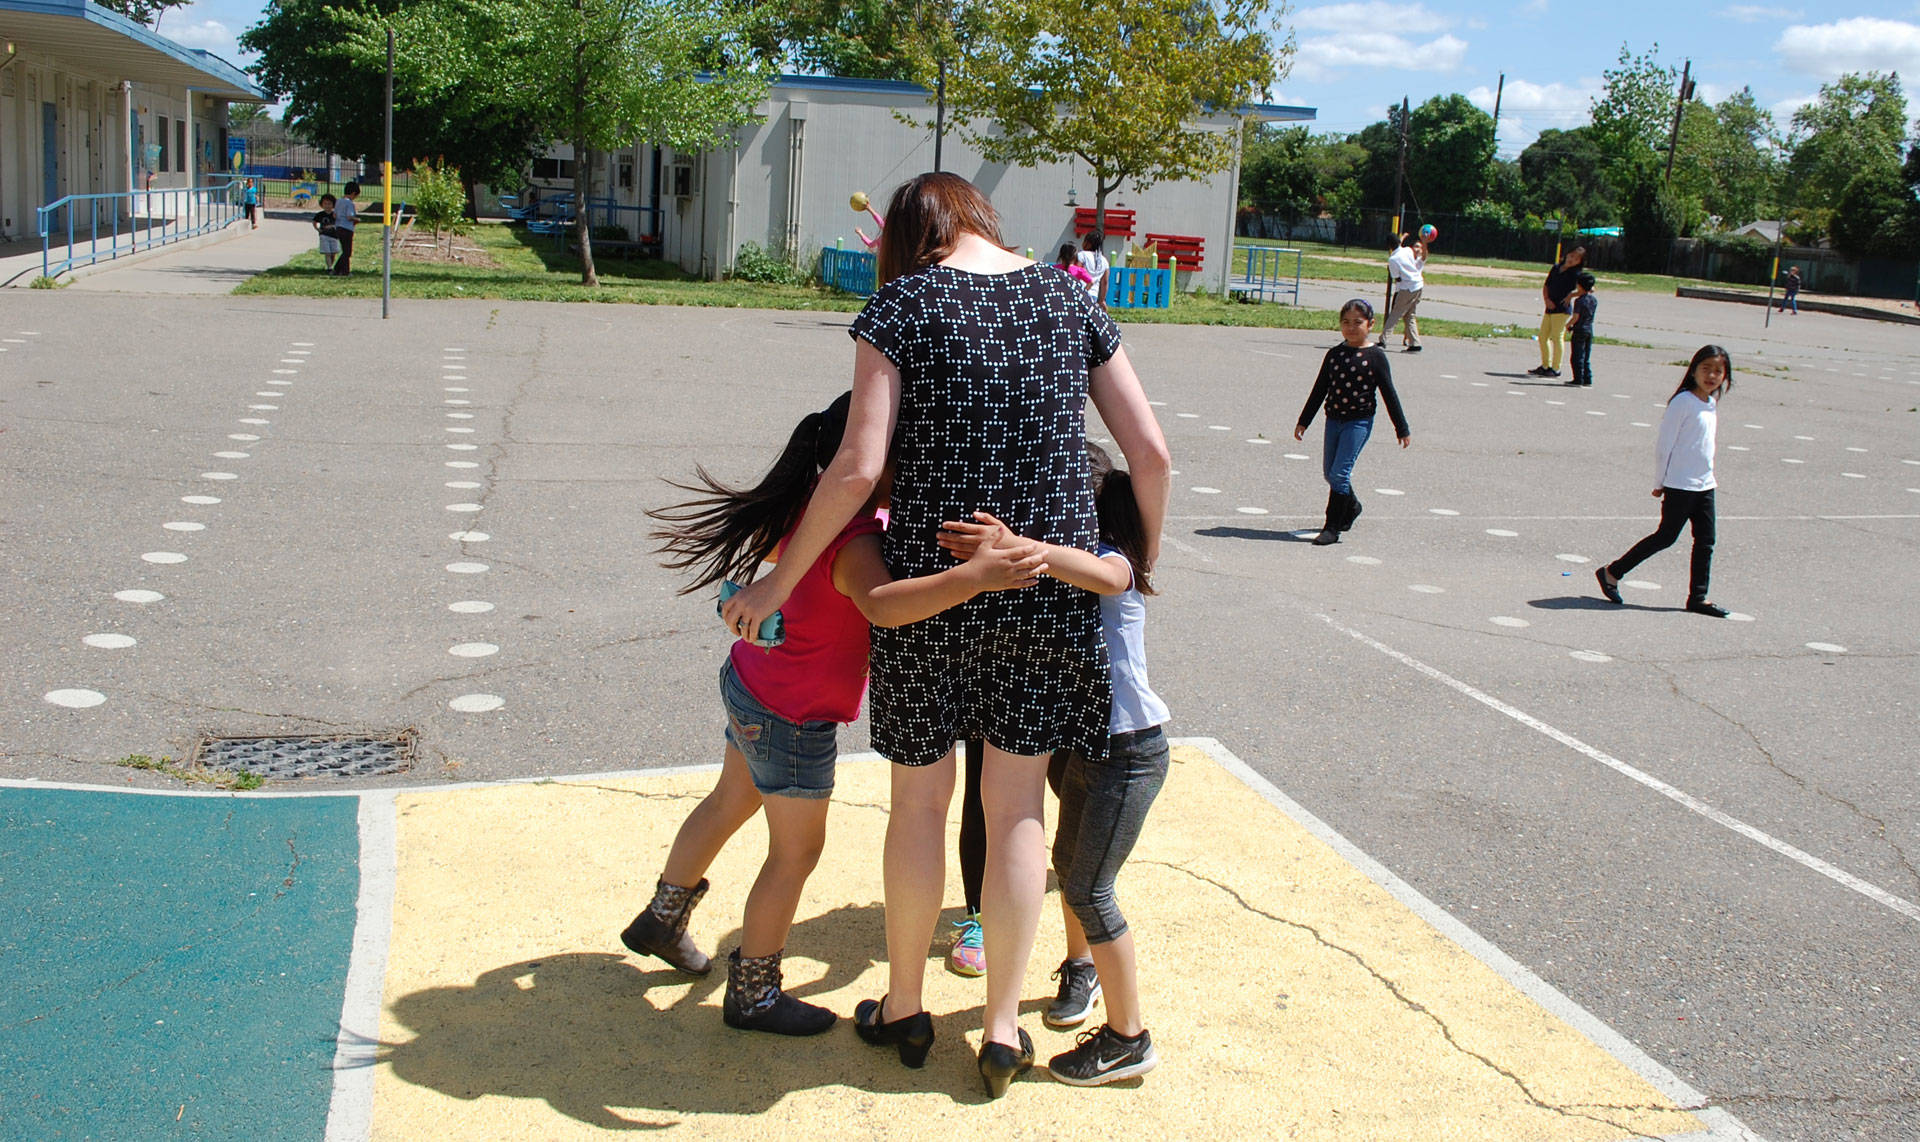 Bethany Coburn, a social worker and coordinator of the Student Support Center at Oak Ridge Elementary, receives a group hug from students on campus. Gabriel Salcedo/KQED